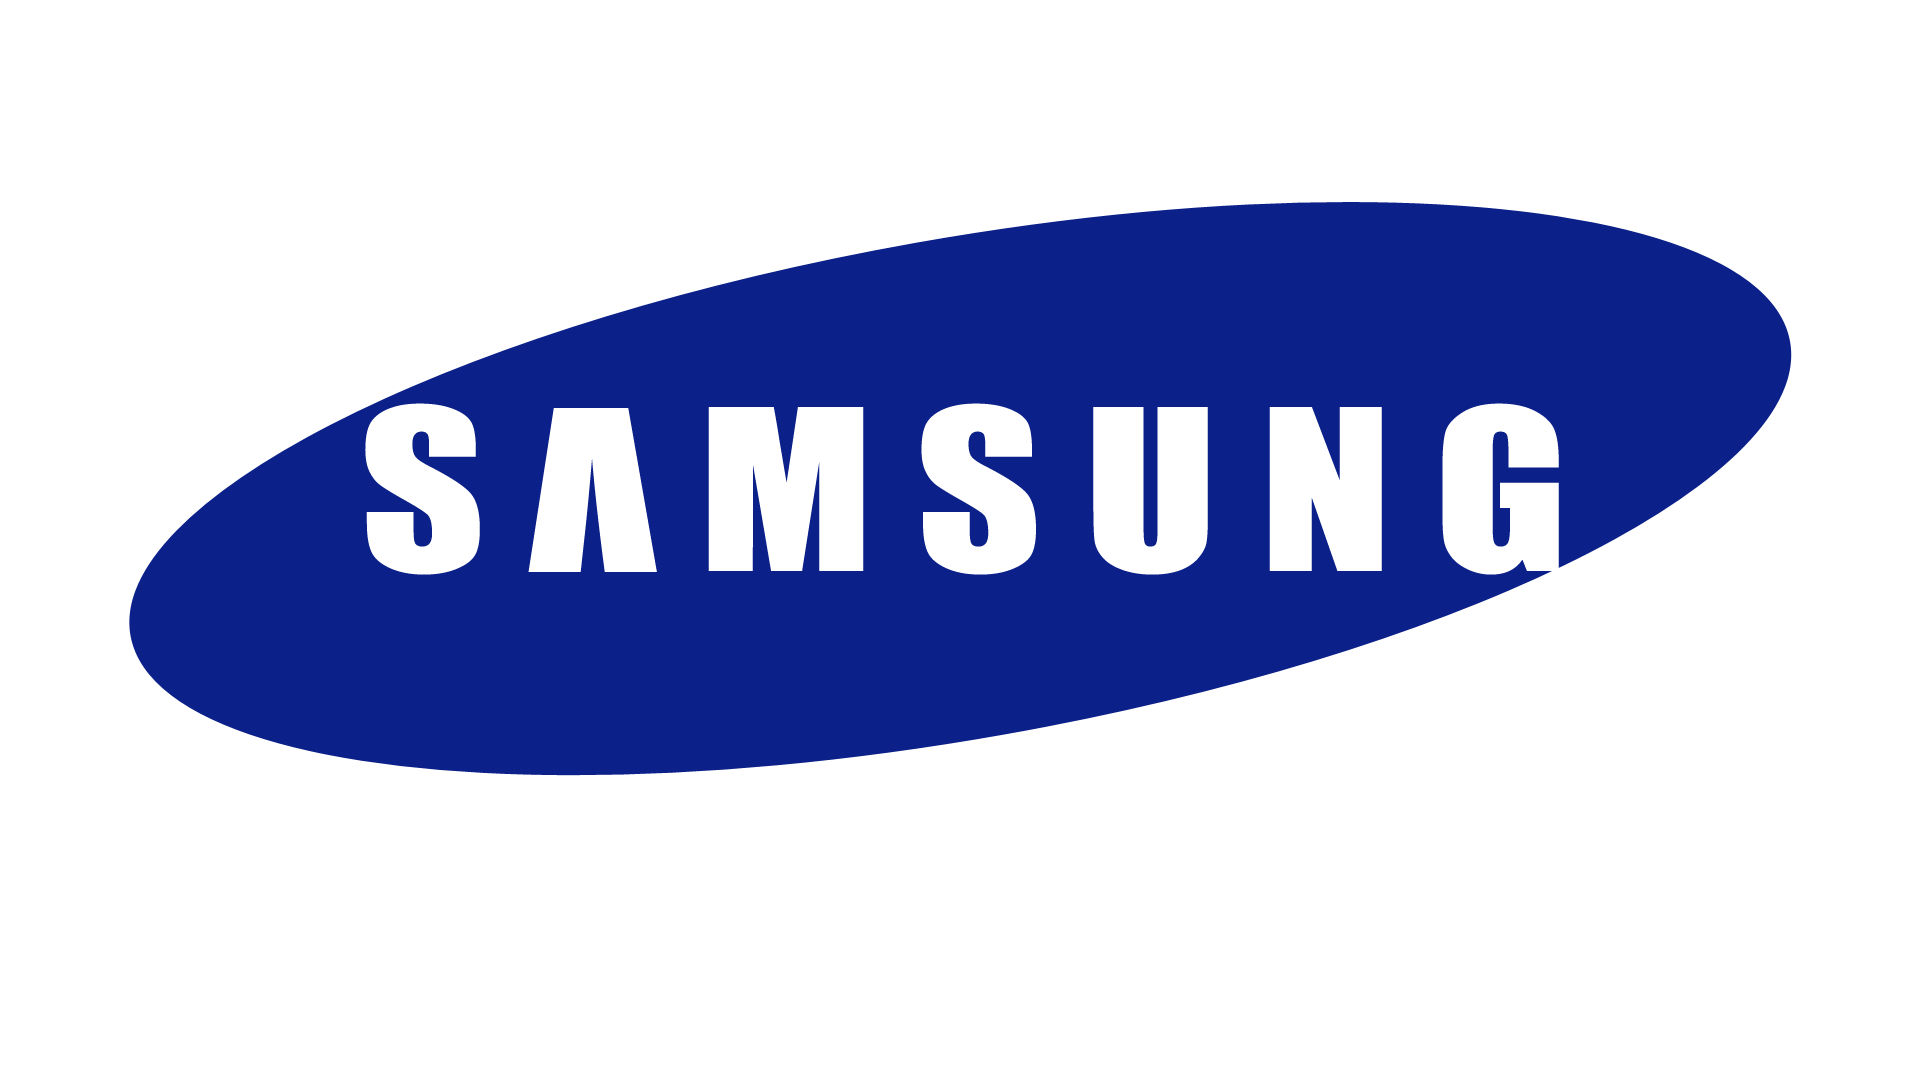 Samsung to infuse Rs. 5,000 crore to expand Noida manufacturing plant.